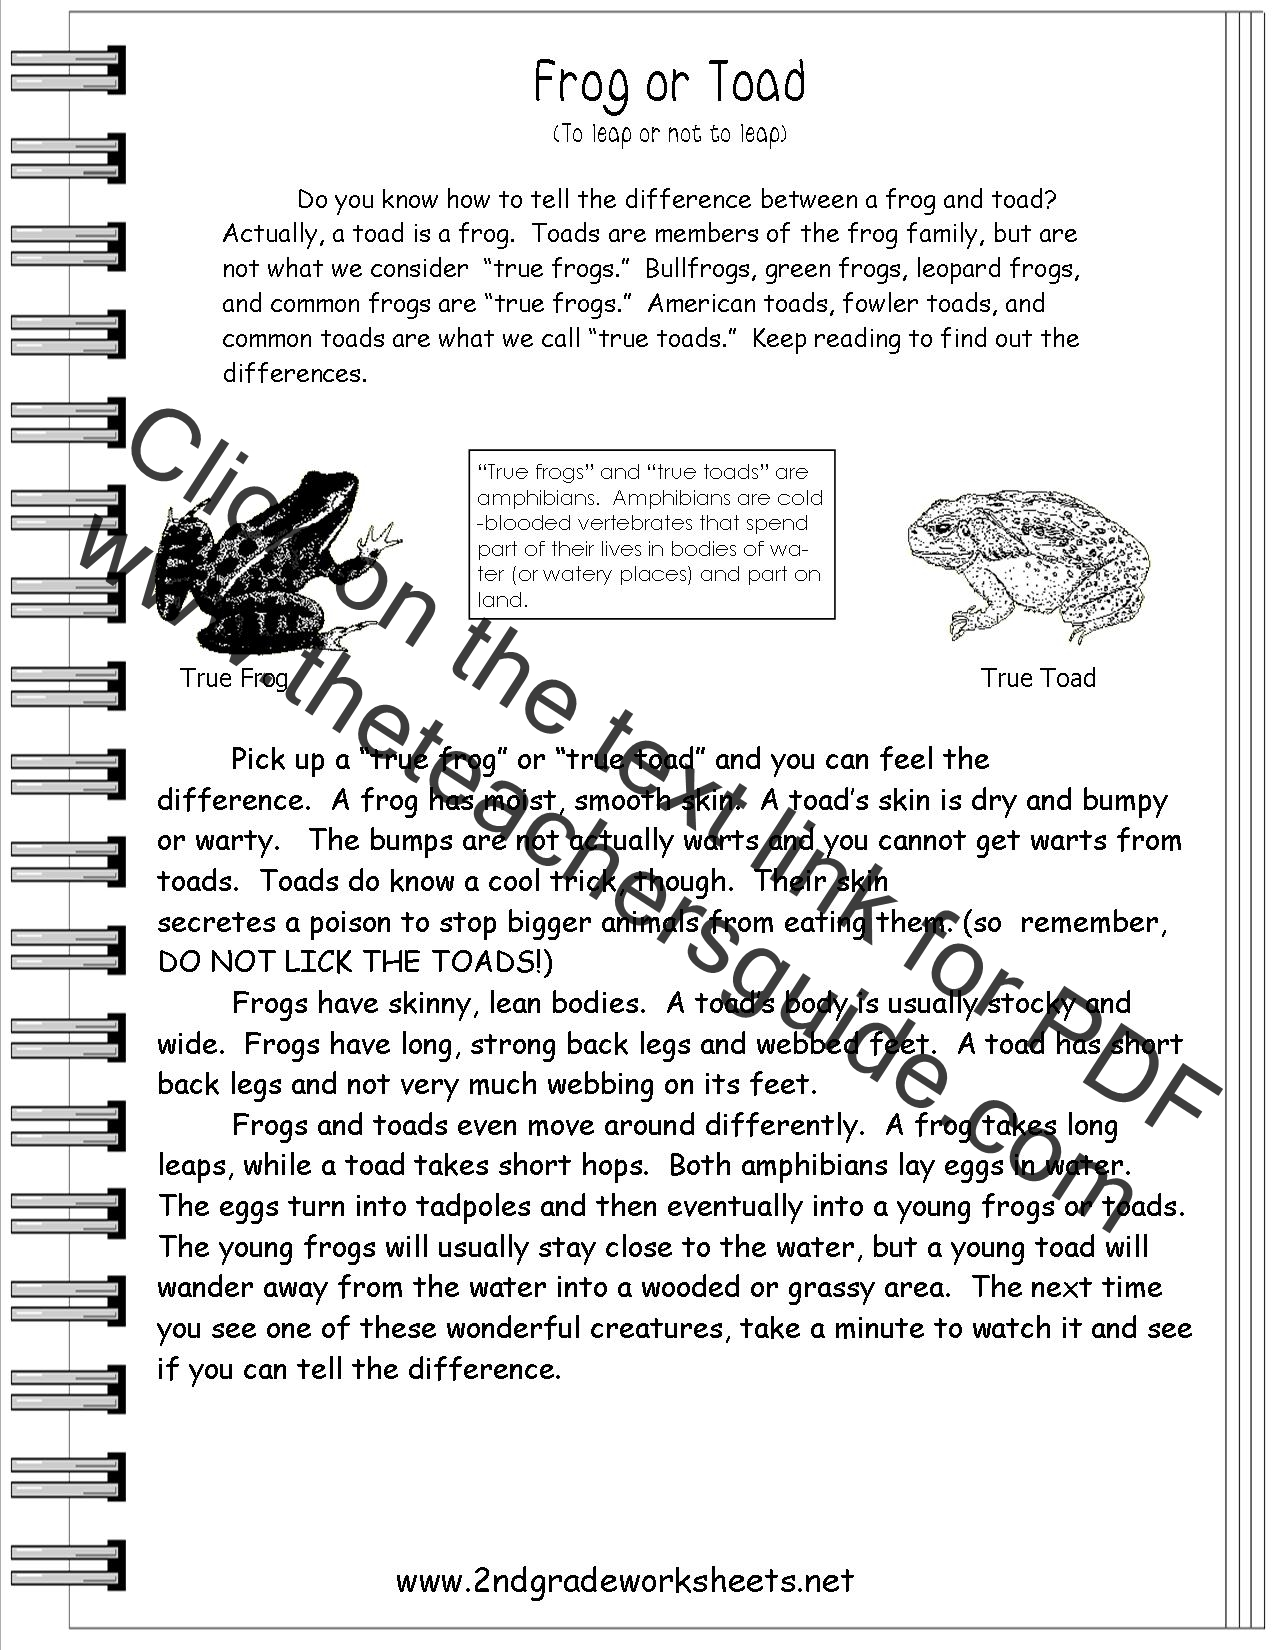 worksheet Functional Reading Comprehension Worksheets informational text worksheets frog or toad worksheet